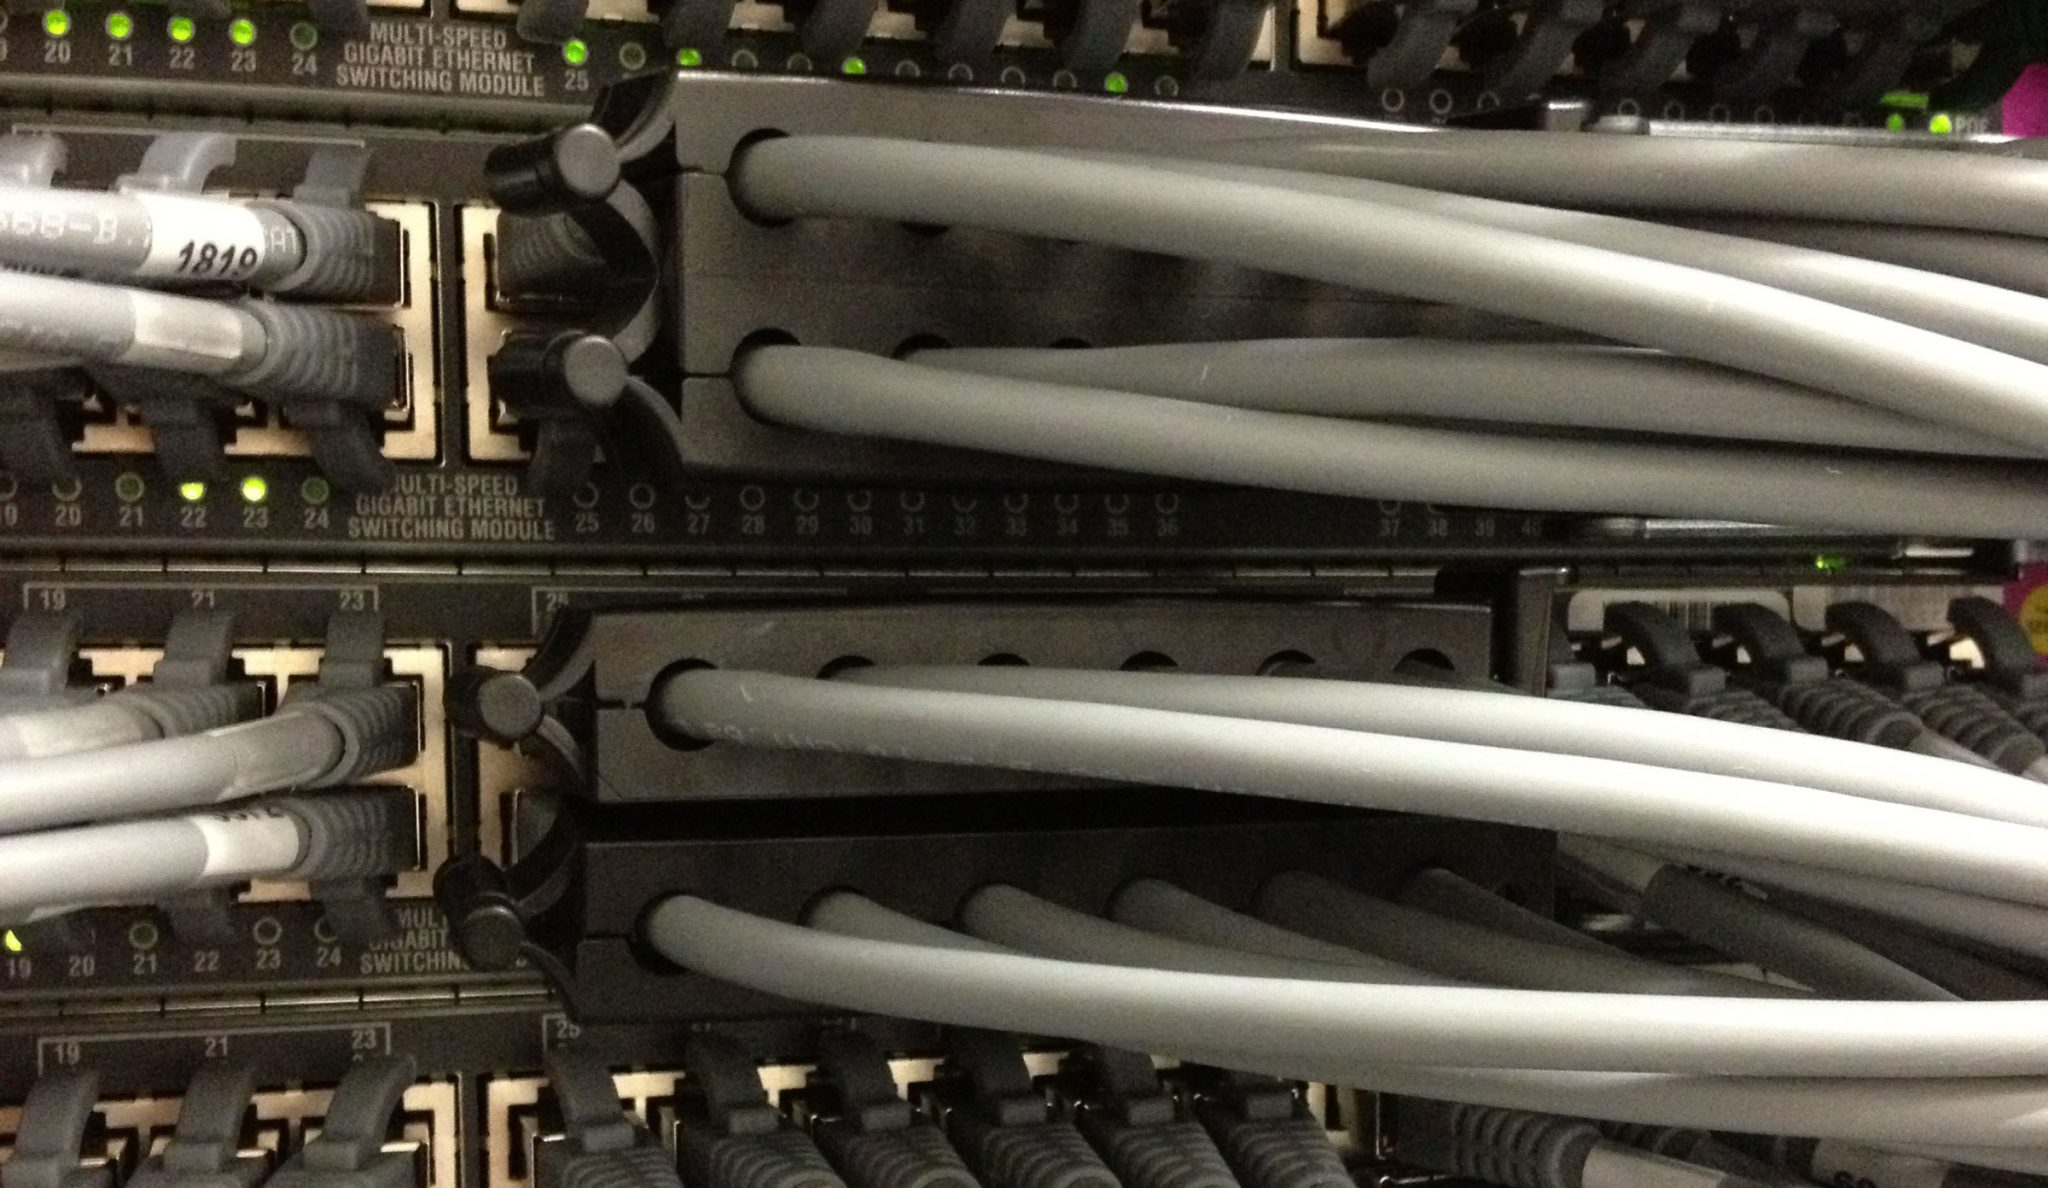 network cable management clips